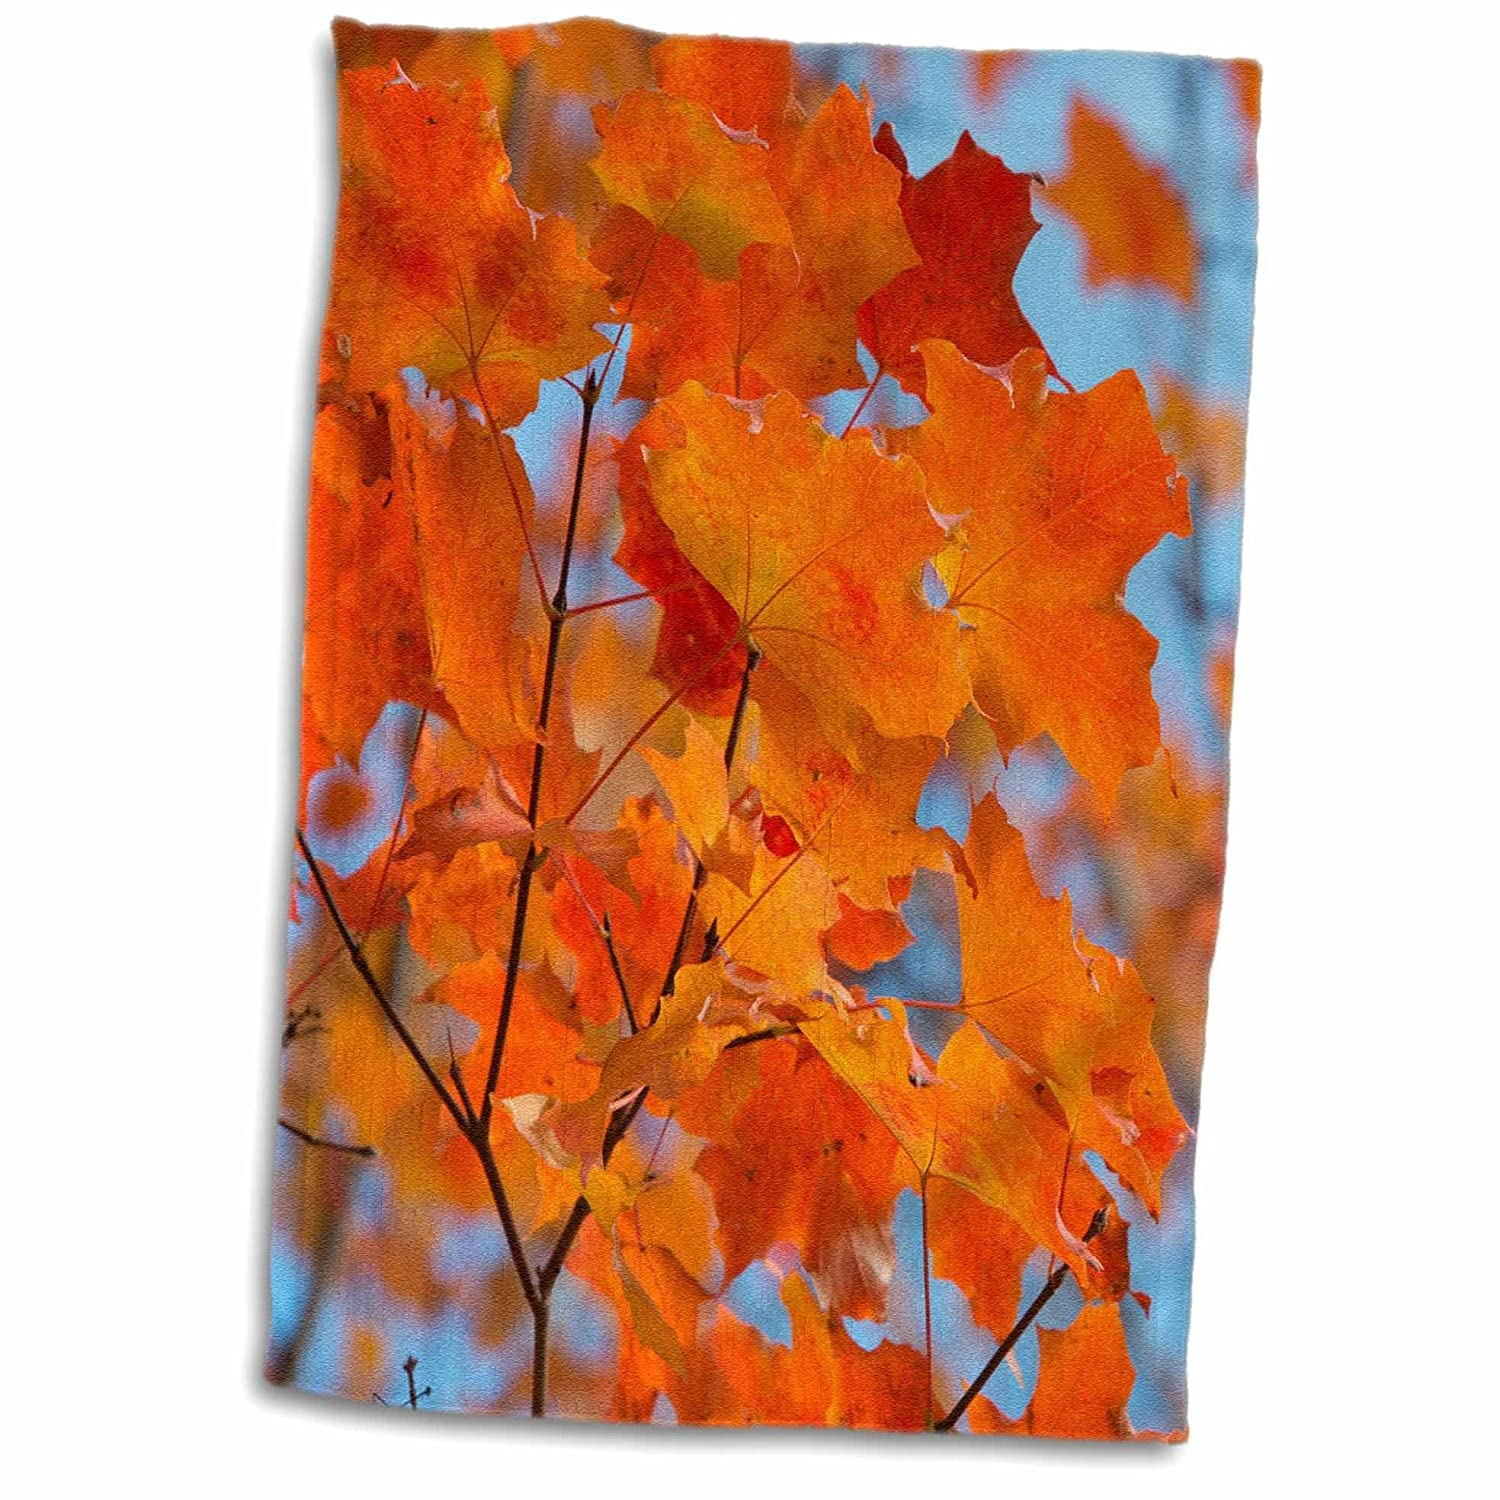 3D Rose Canada Quebec City 15 x 22 Colorful Orange Fall Maple Tree Leaves TWL/_187670/_1 Towel